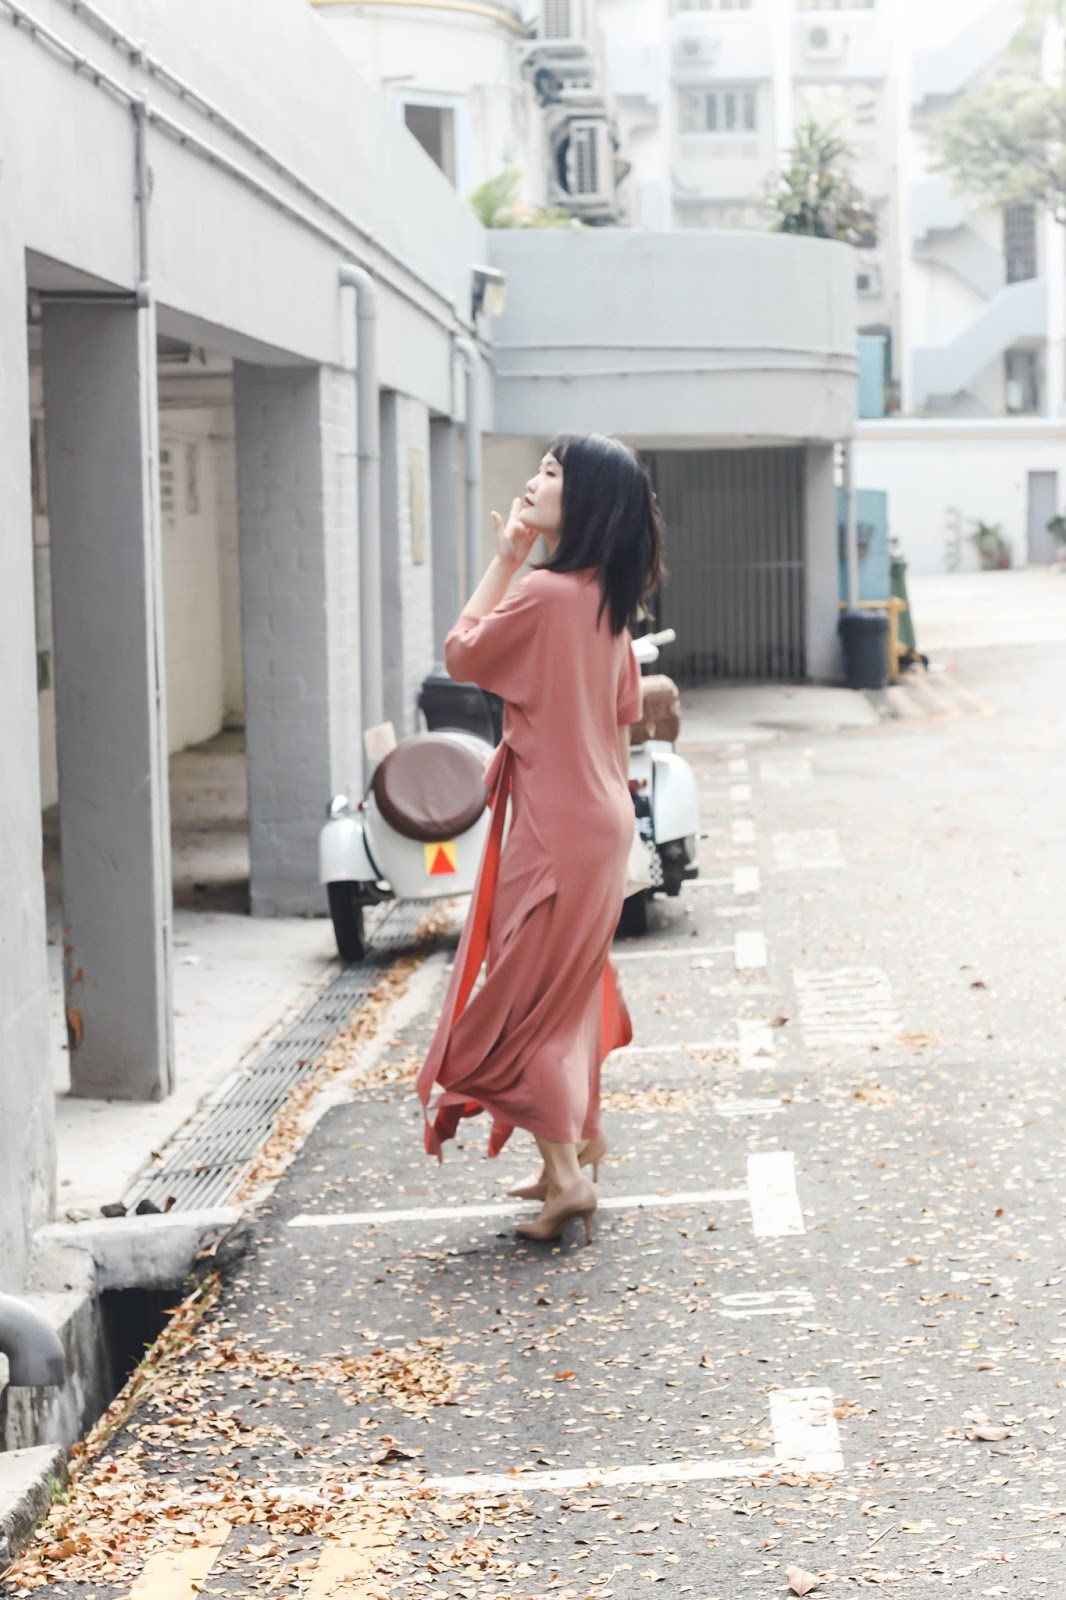 singapore blogger stylist fashion street photographer look book pink wiwt ootd how to style outfit